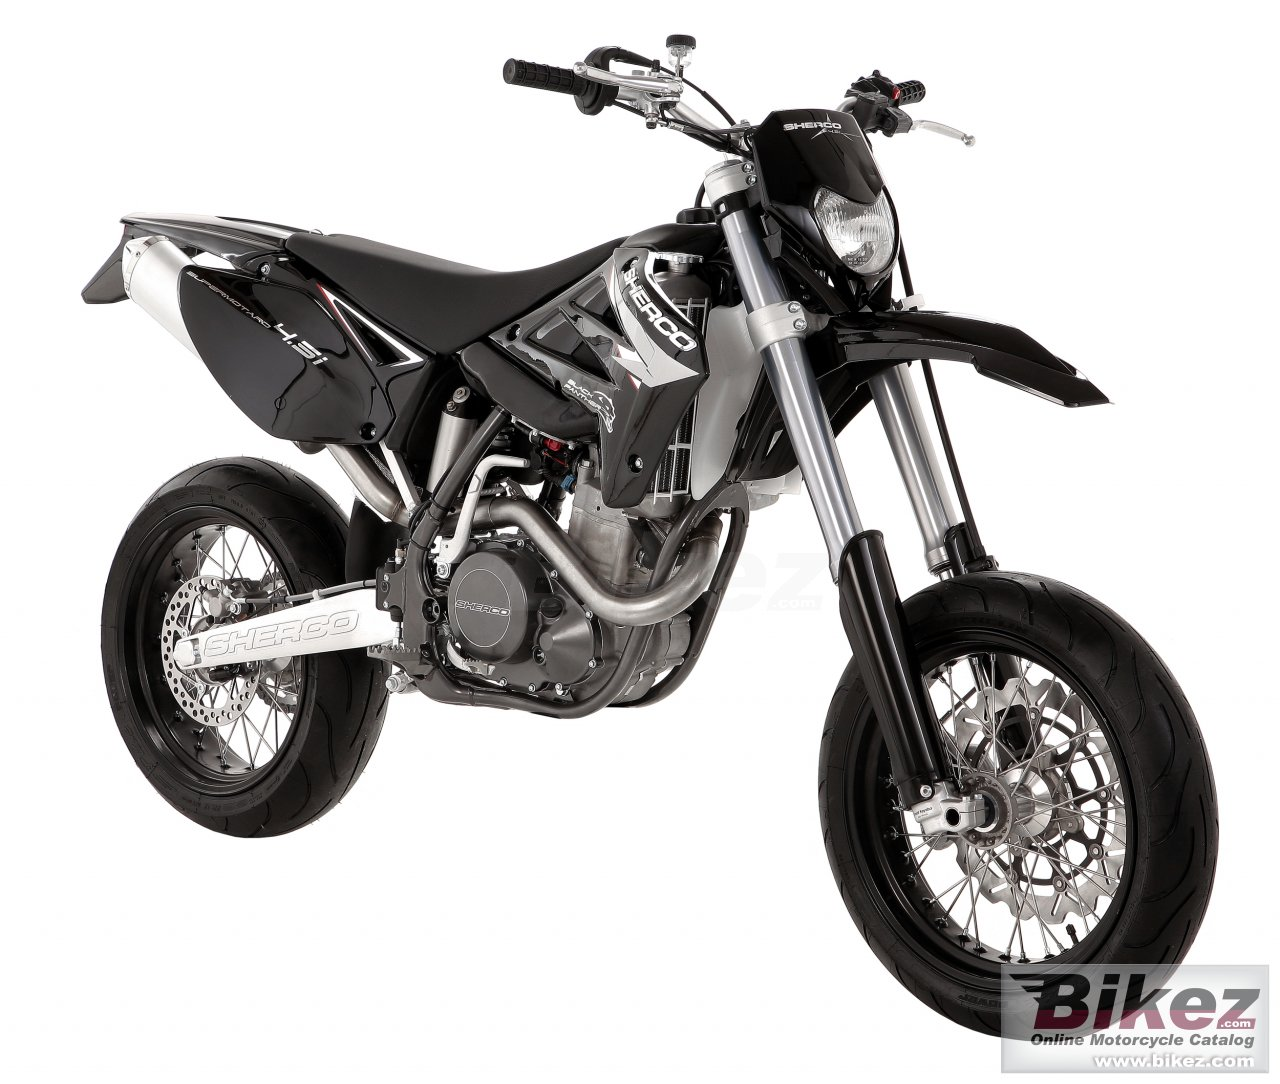 Big Sherco 4.5 4t supermotard picture and wallpaper from Bikez.com